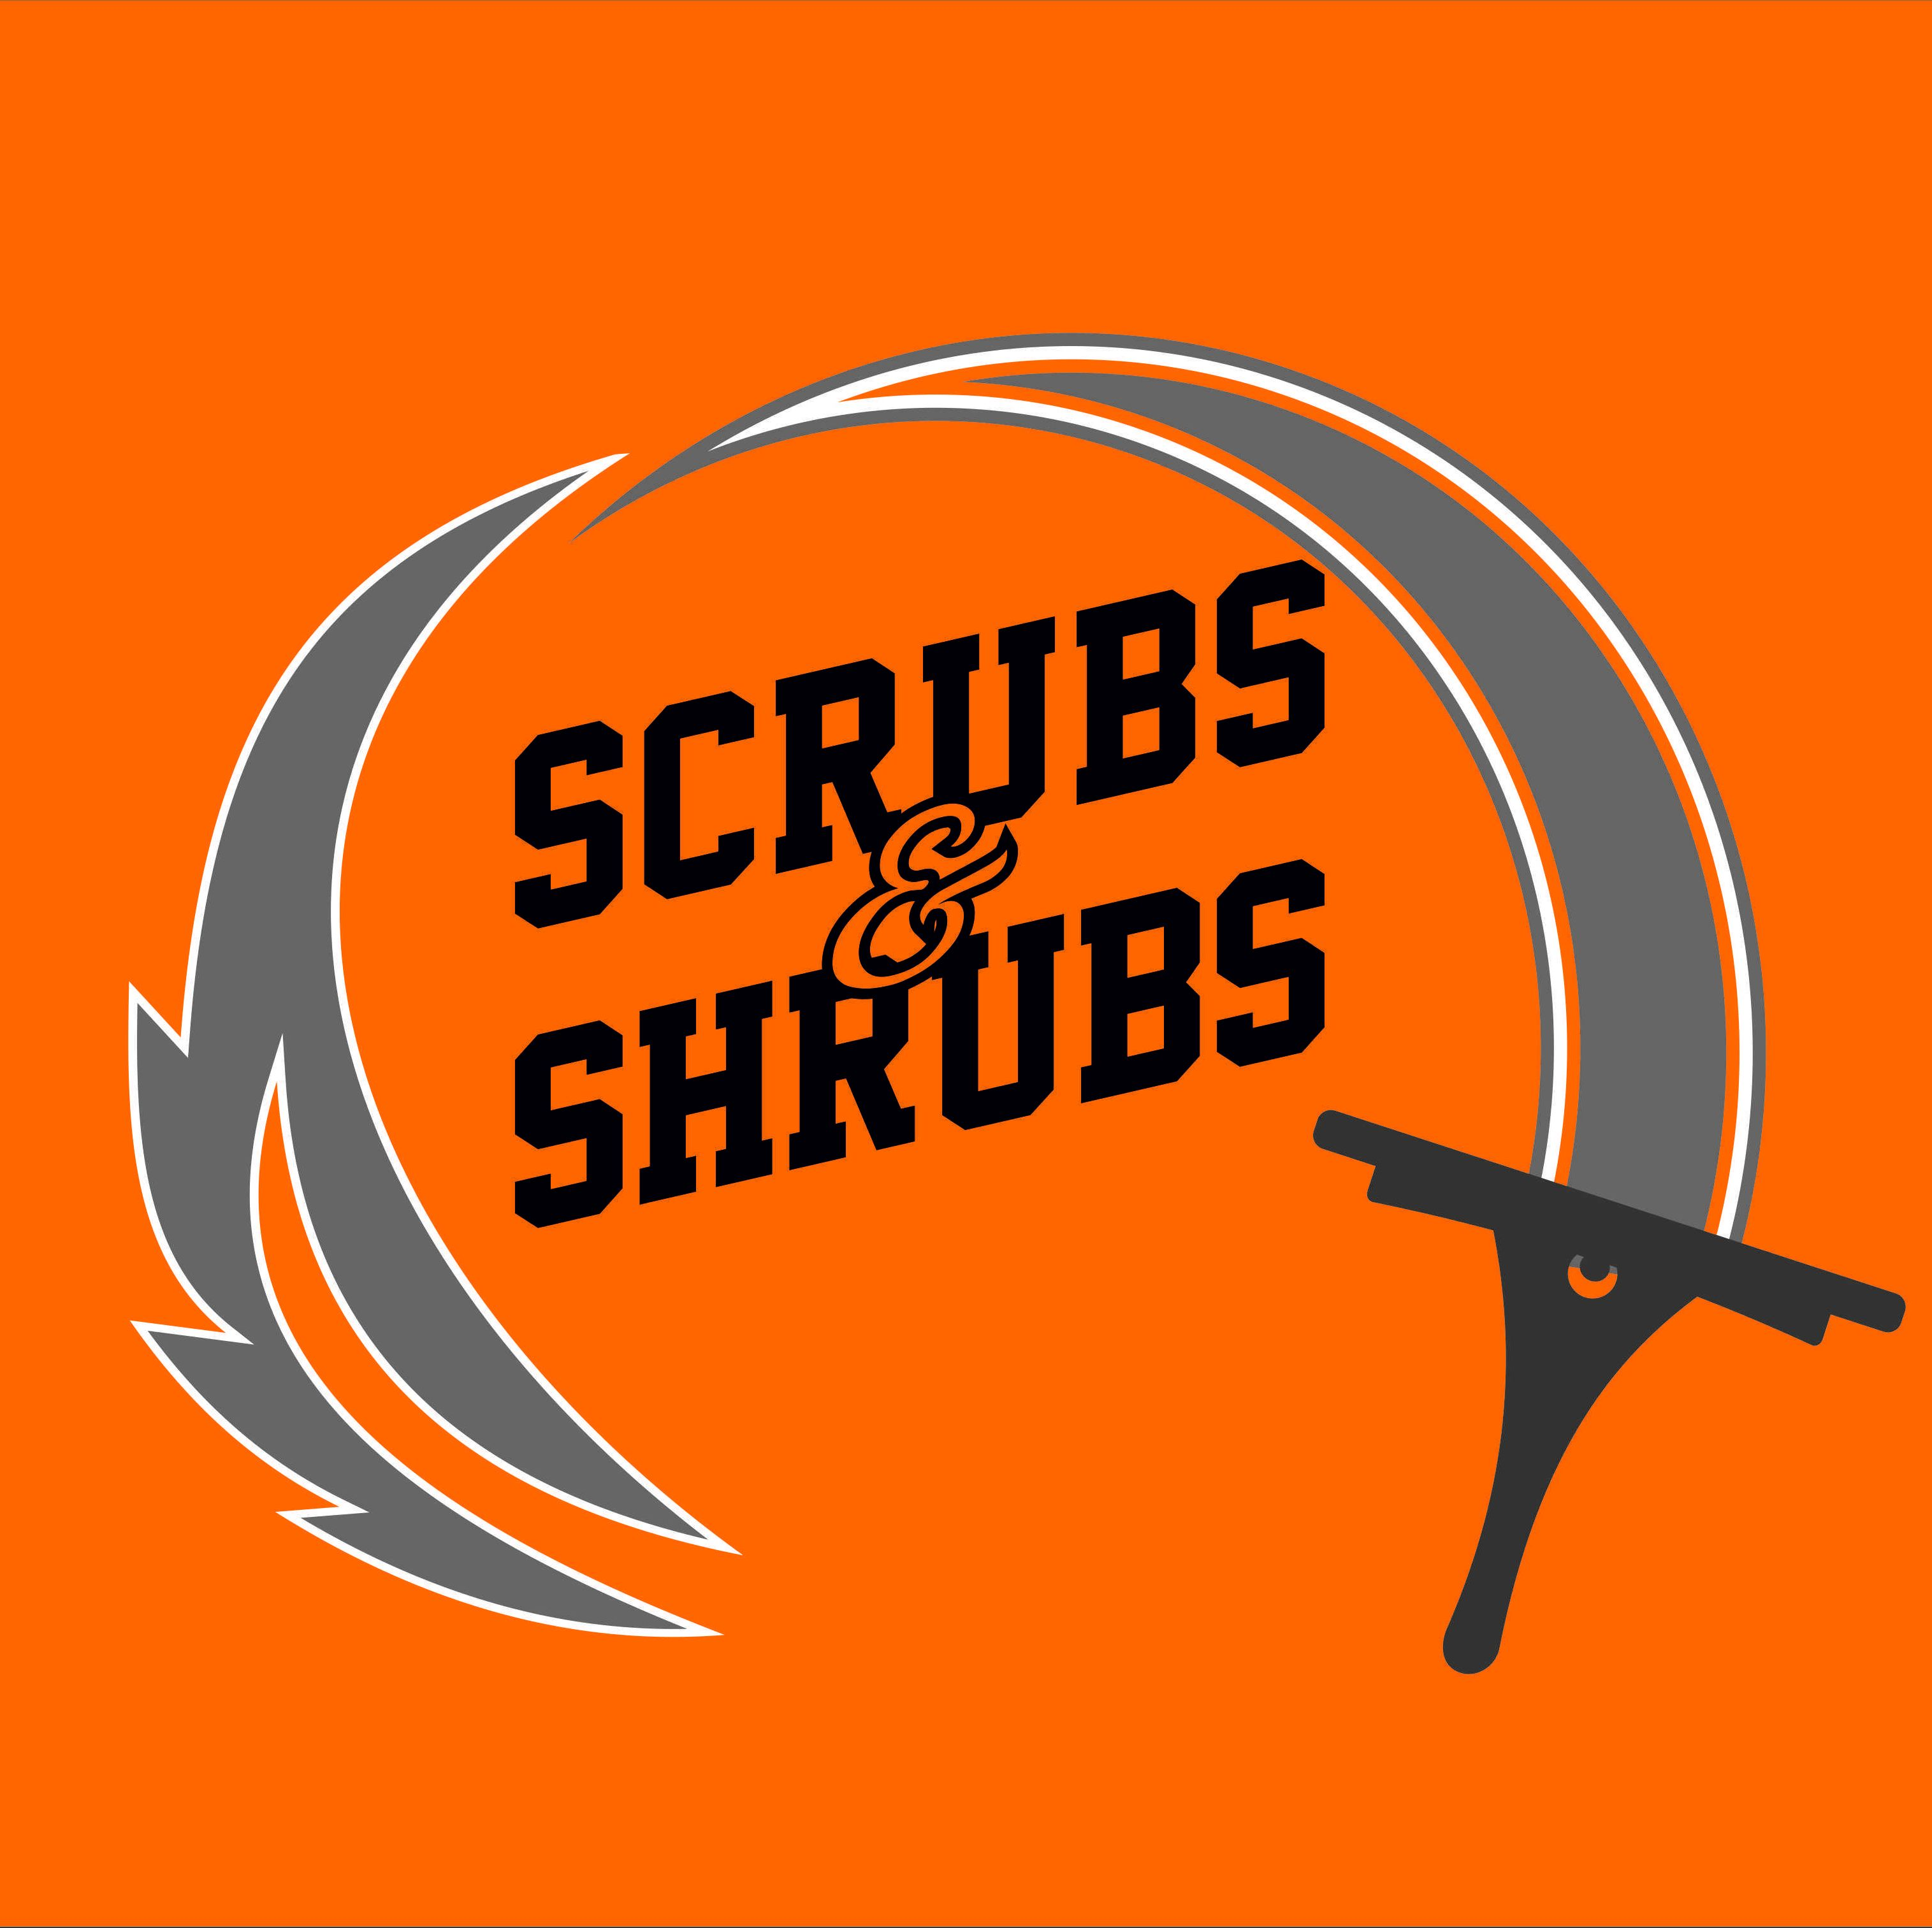 Scrubs and Shrubs logo